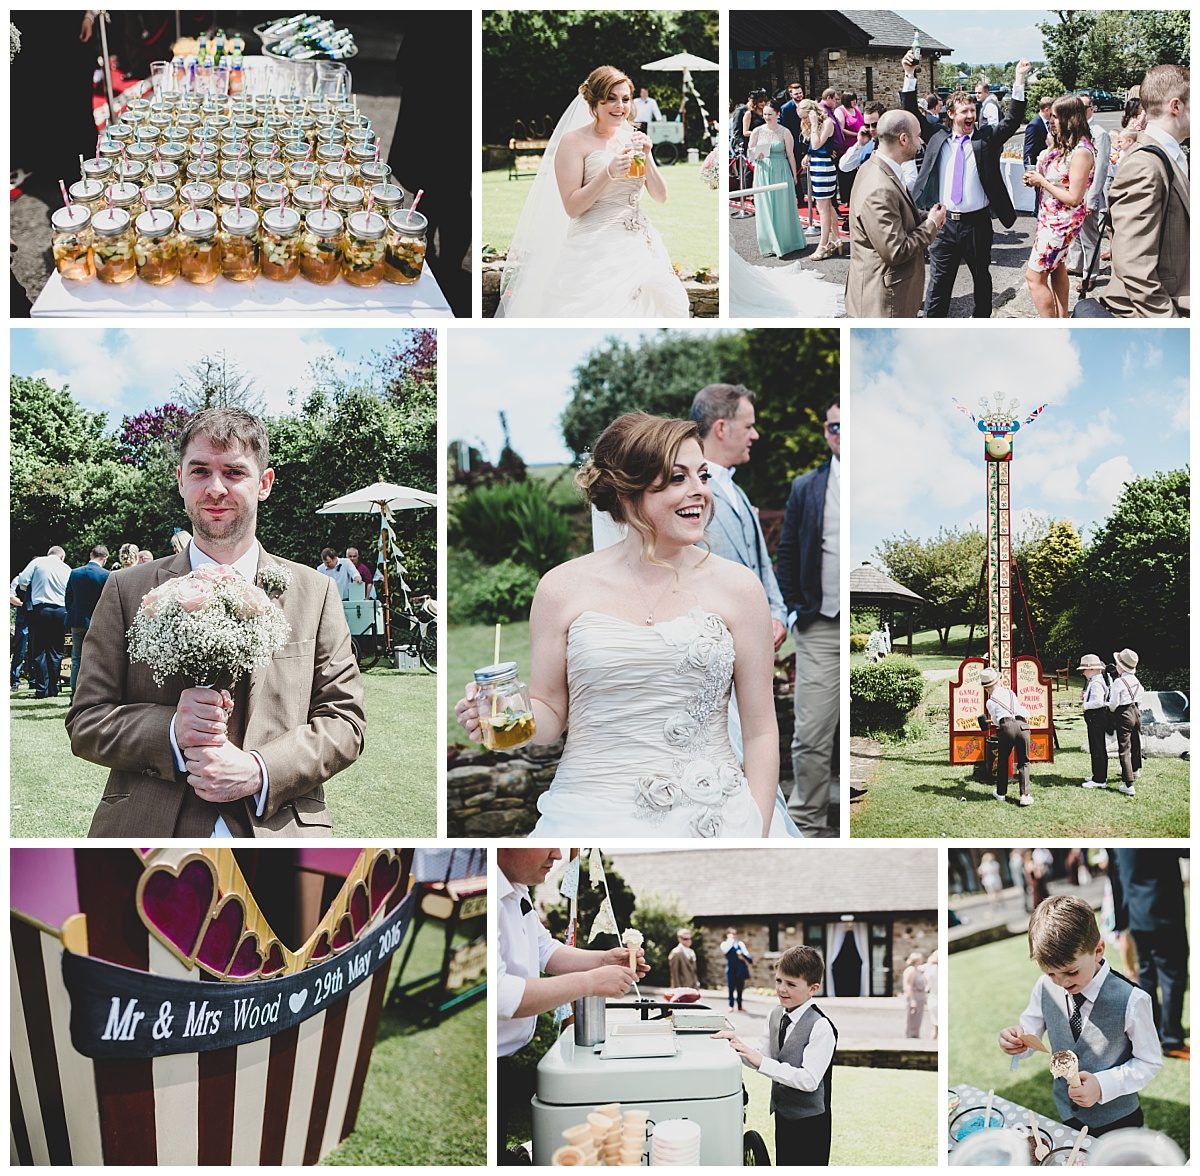 festival themed wedding - documentary shots of guests and outdoor games